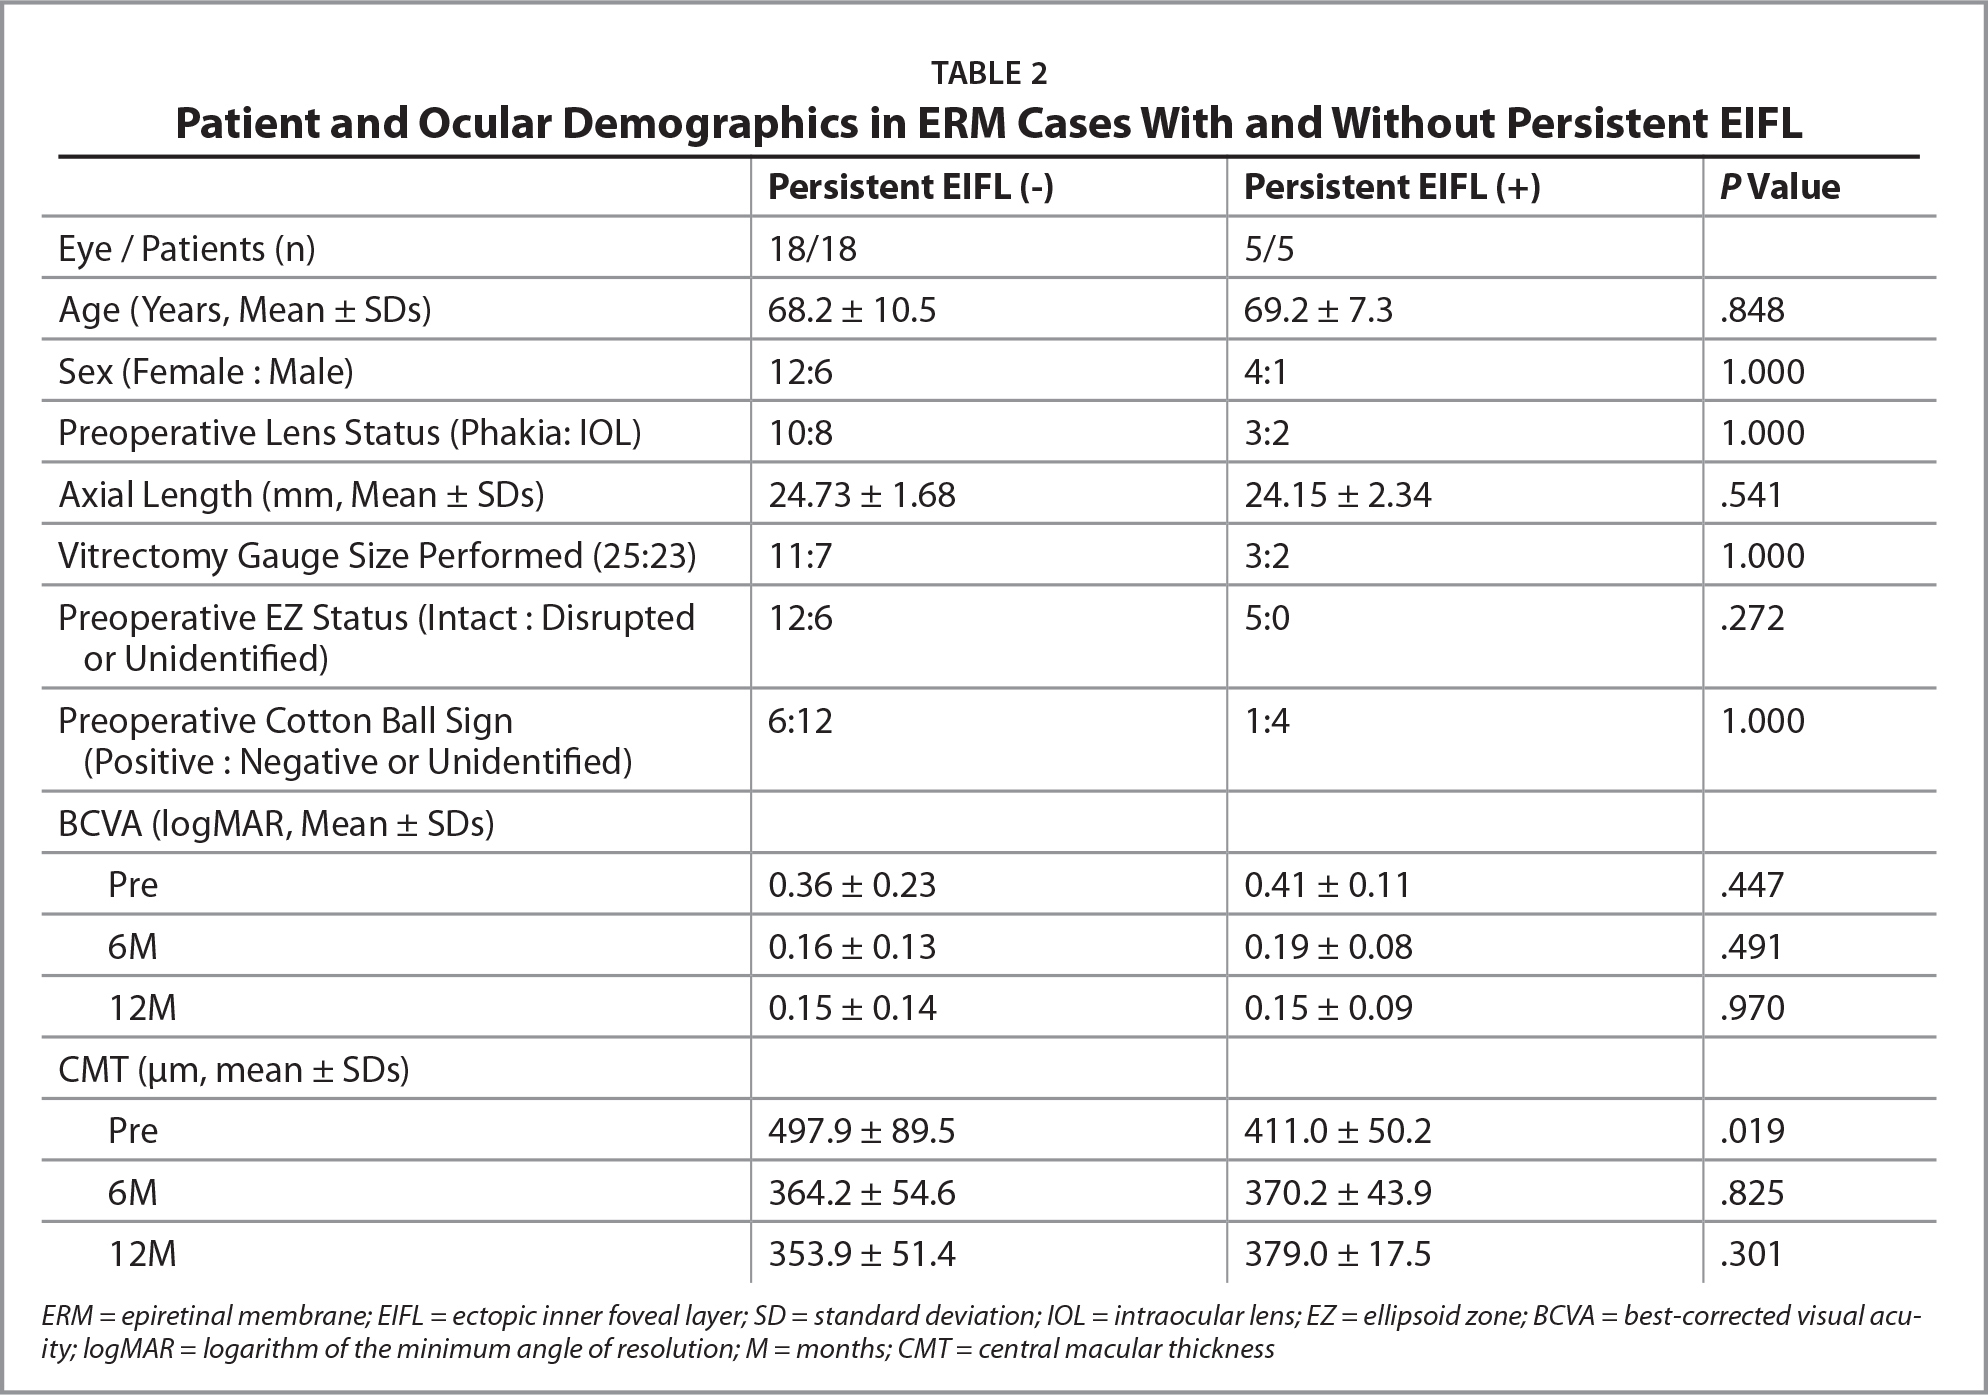 Patient and Ocular Demographics in ERM Cases With and Without Persistent EIFL